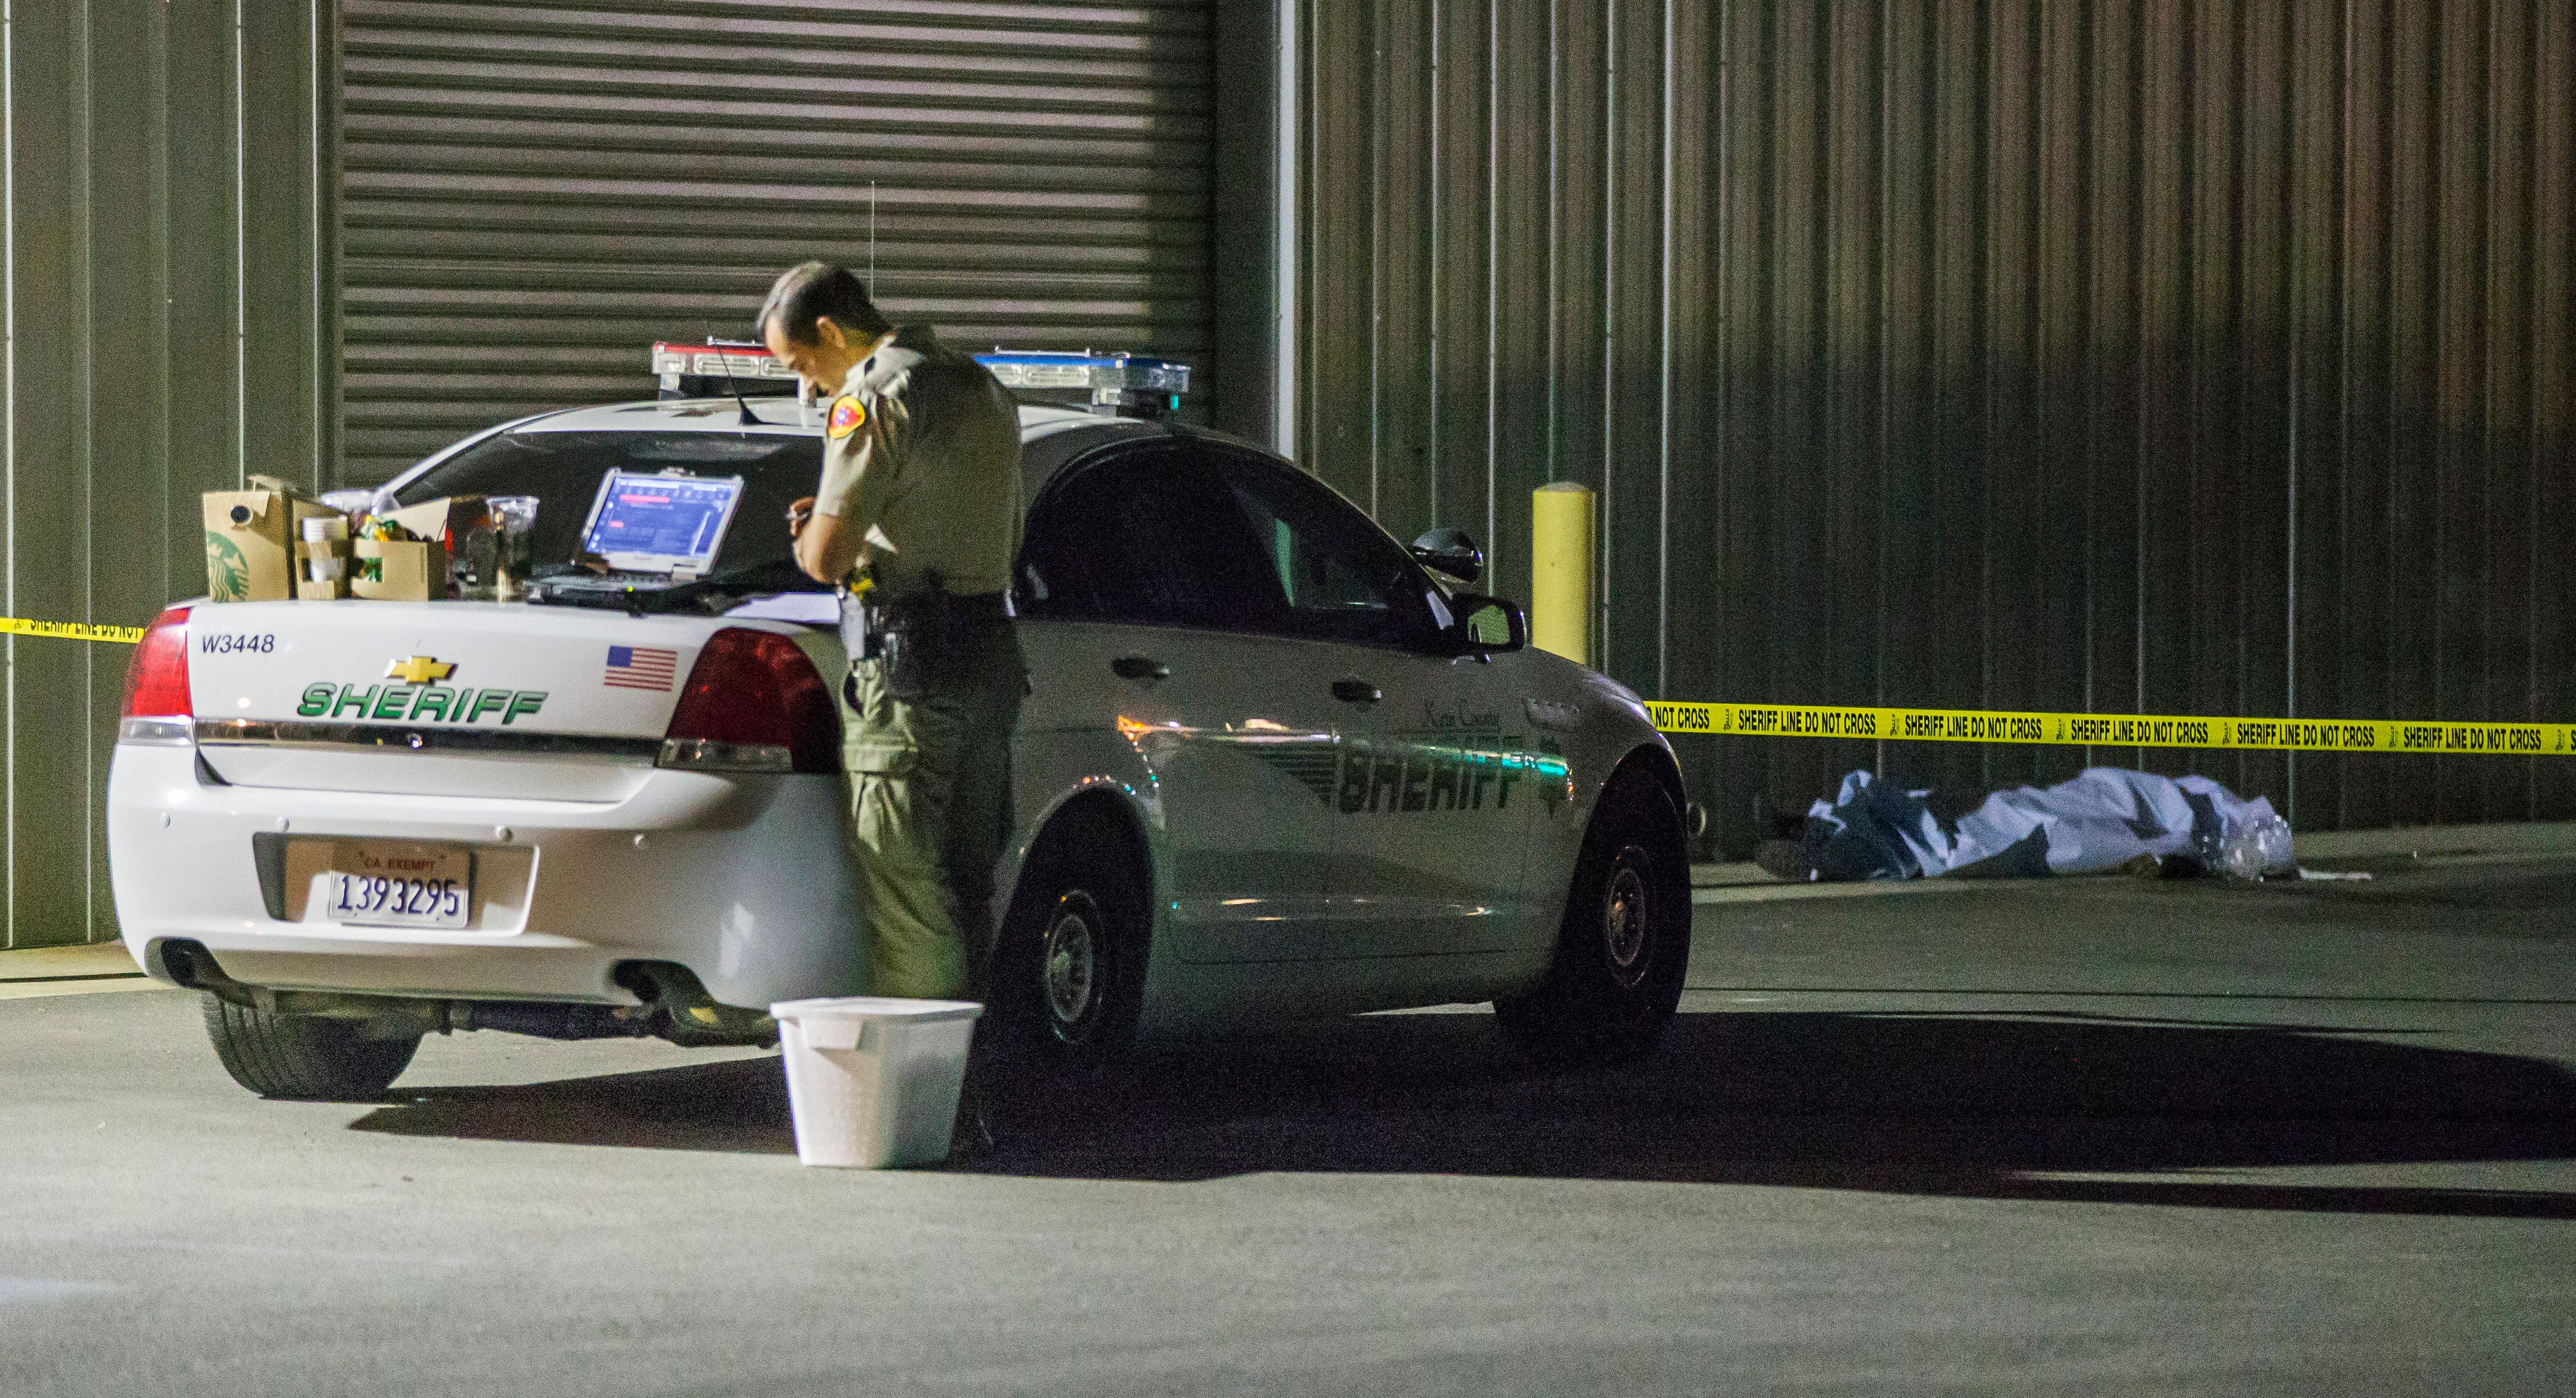 A Kern County sheriff's deputy collects evidence after a series of shootings on Wednesday in Bakersfield, Calif.